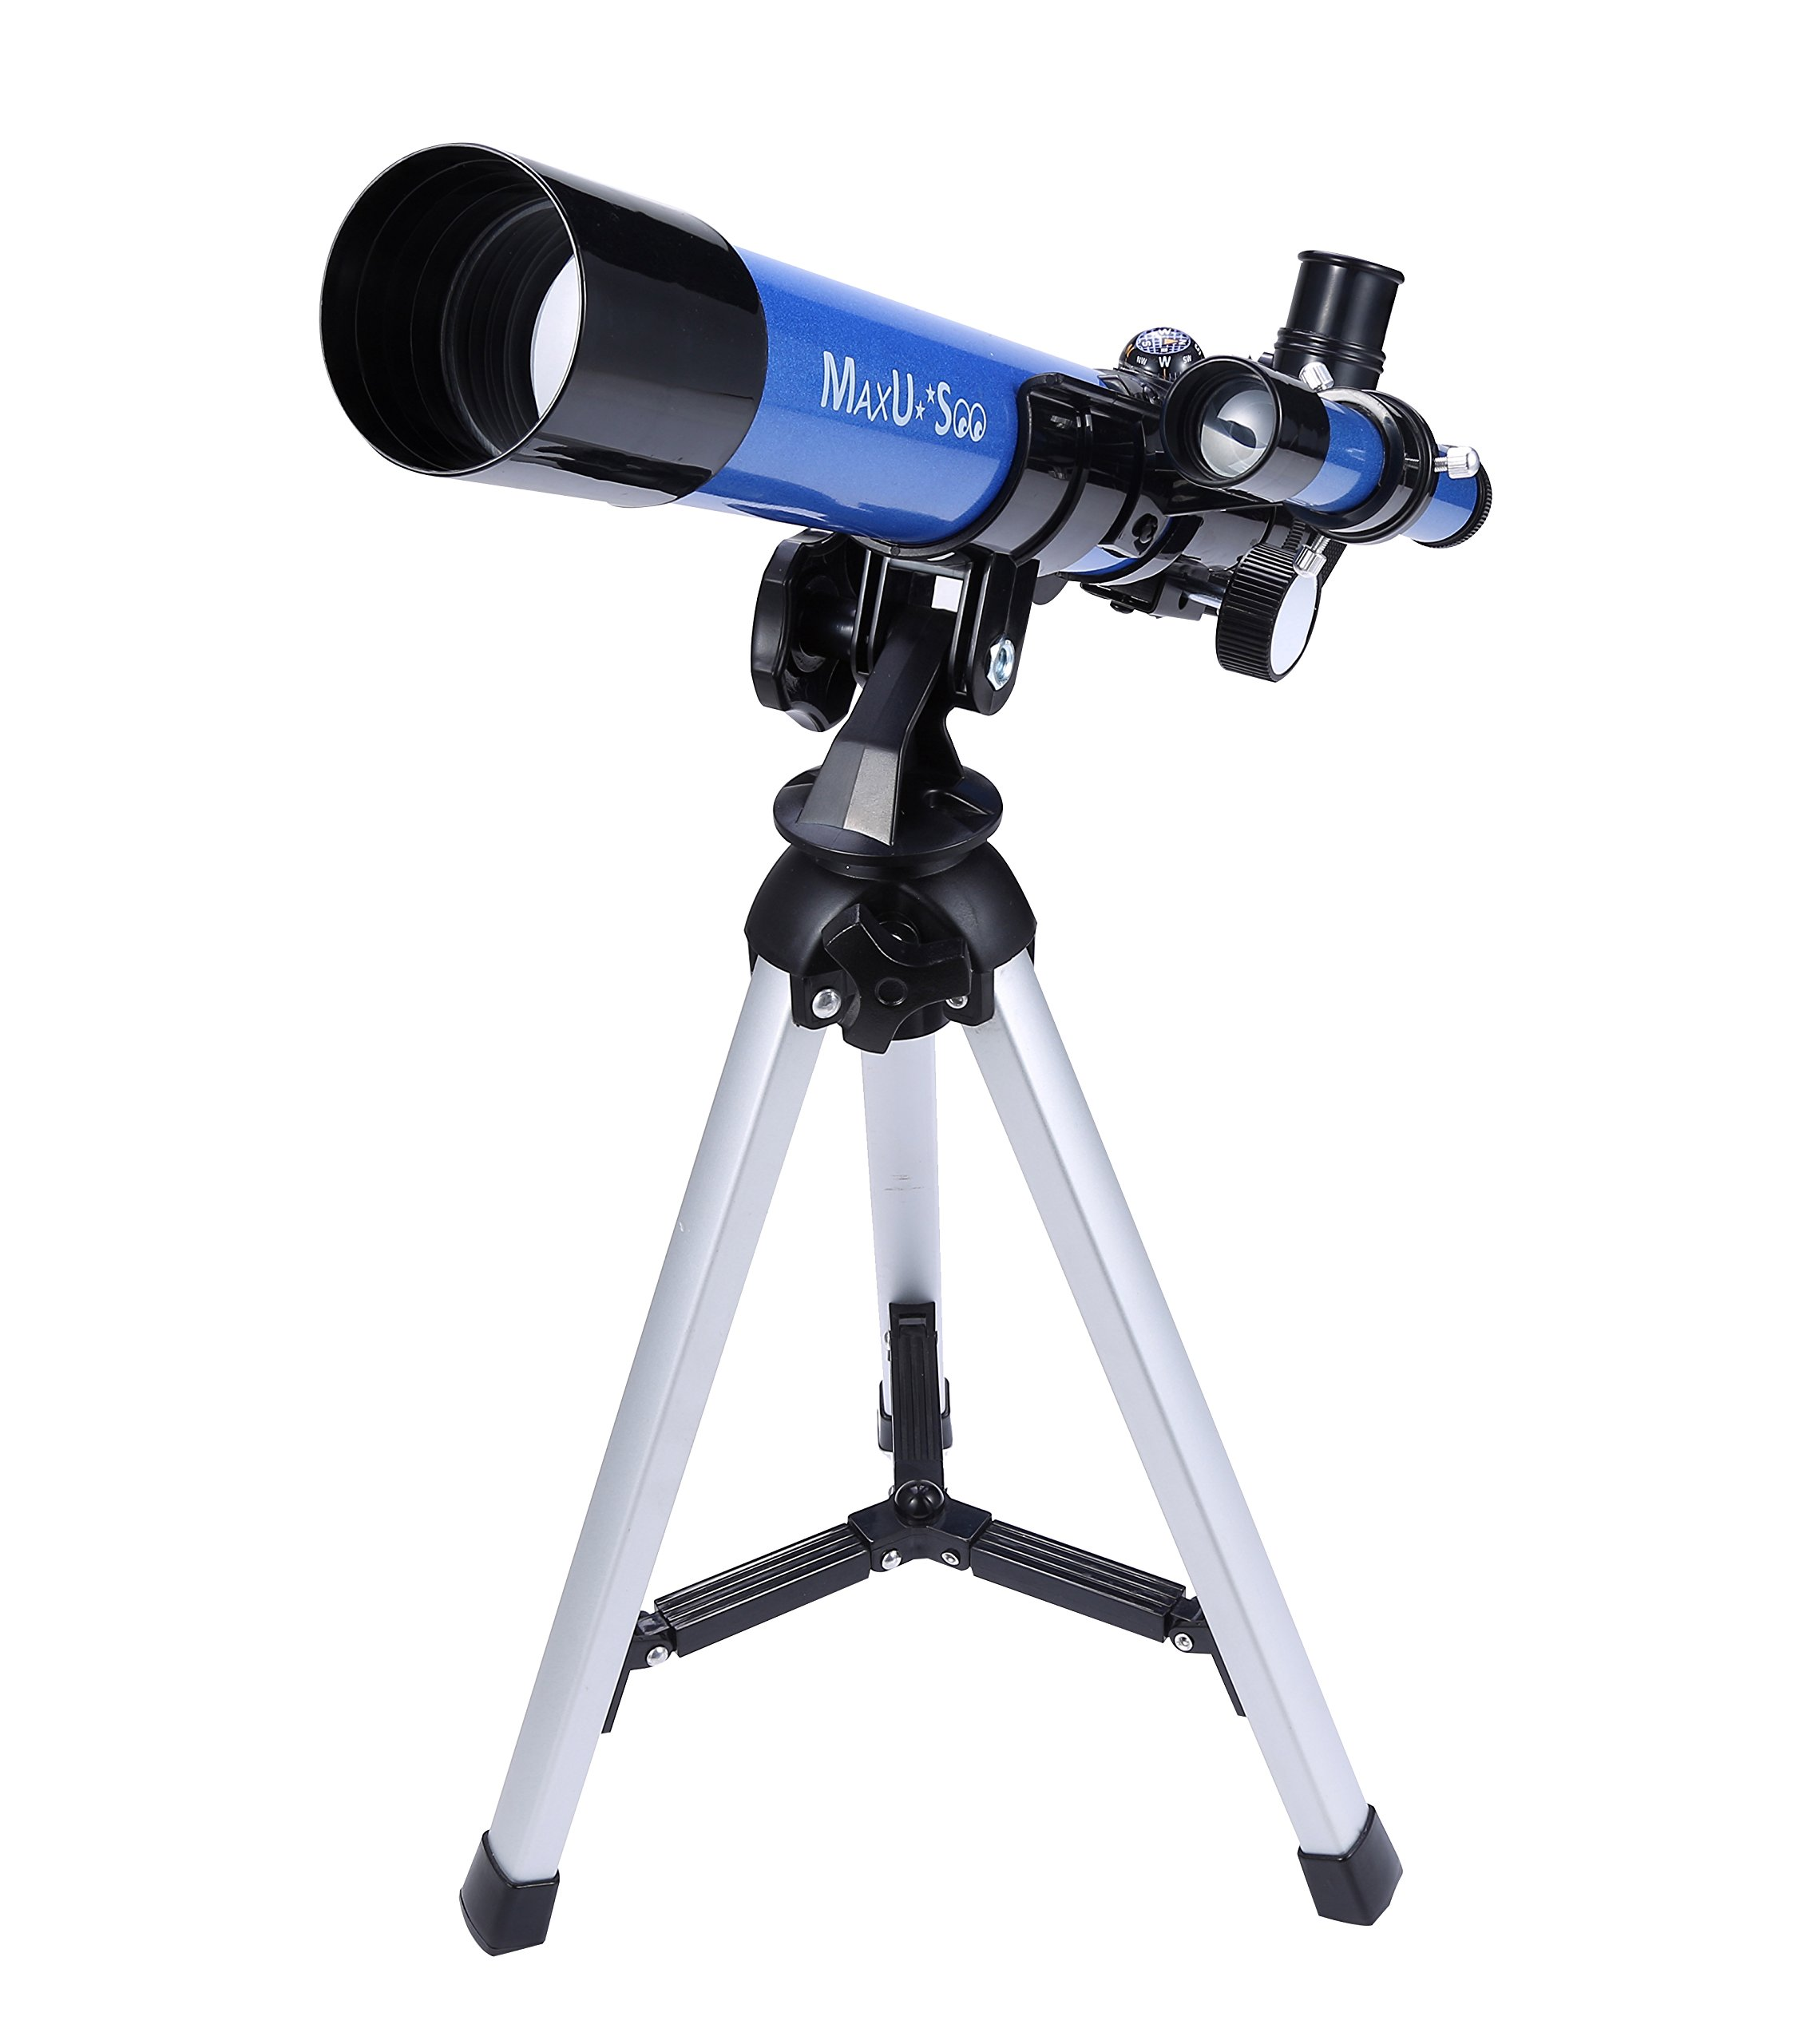 MaxUSee Kids Telescope 400x40mm with Tripod & Finder Scope, Portable Telescope for Kids & Beginners, Travel Scope with Moon Mirror, Stars & Moon map Included by MaxUSee